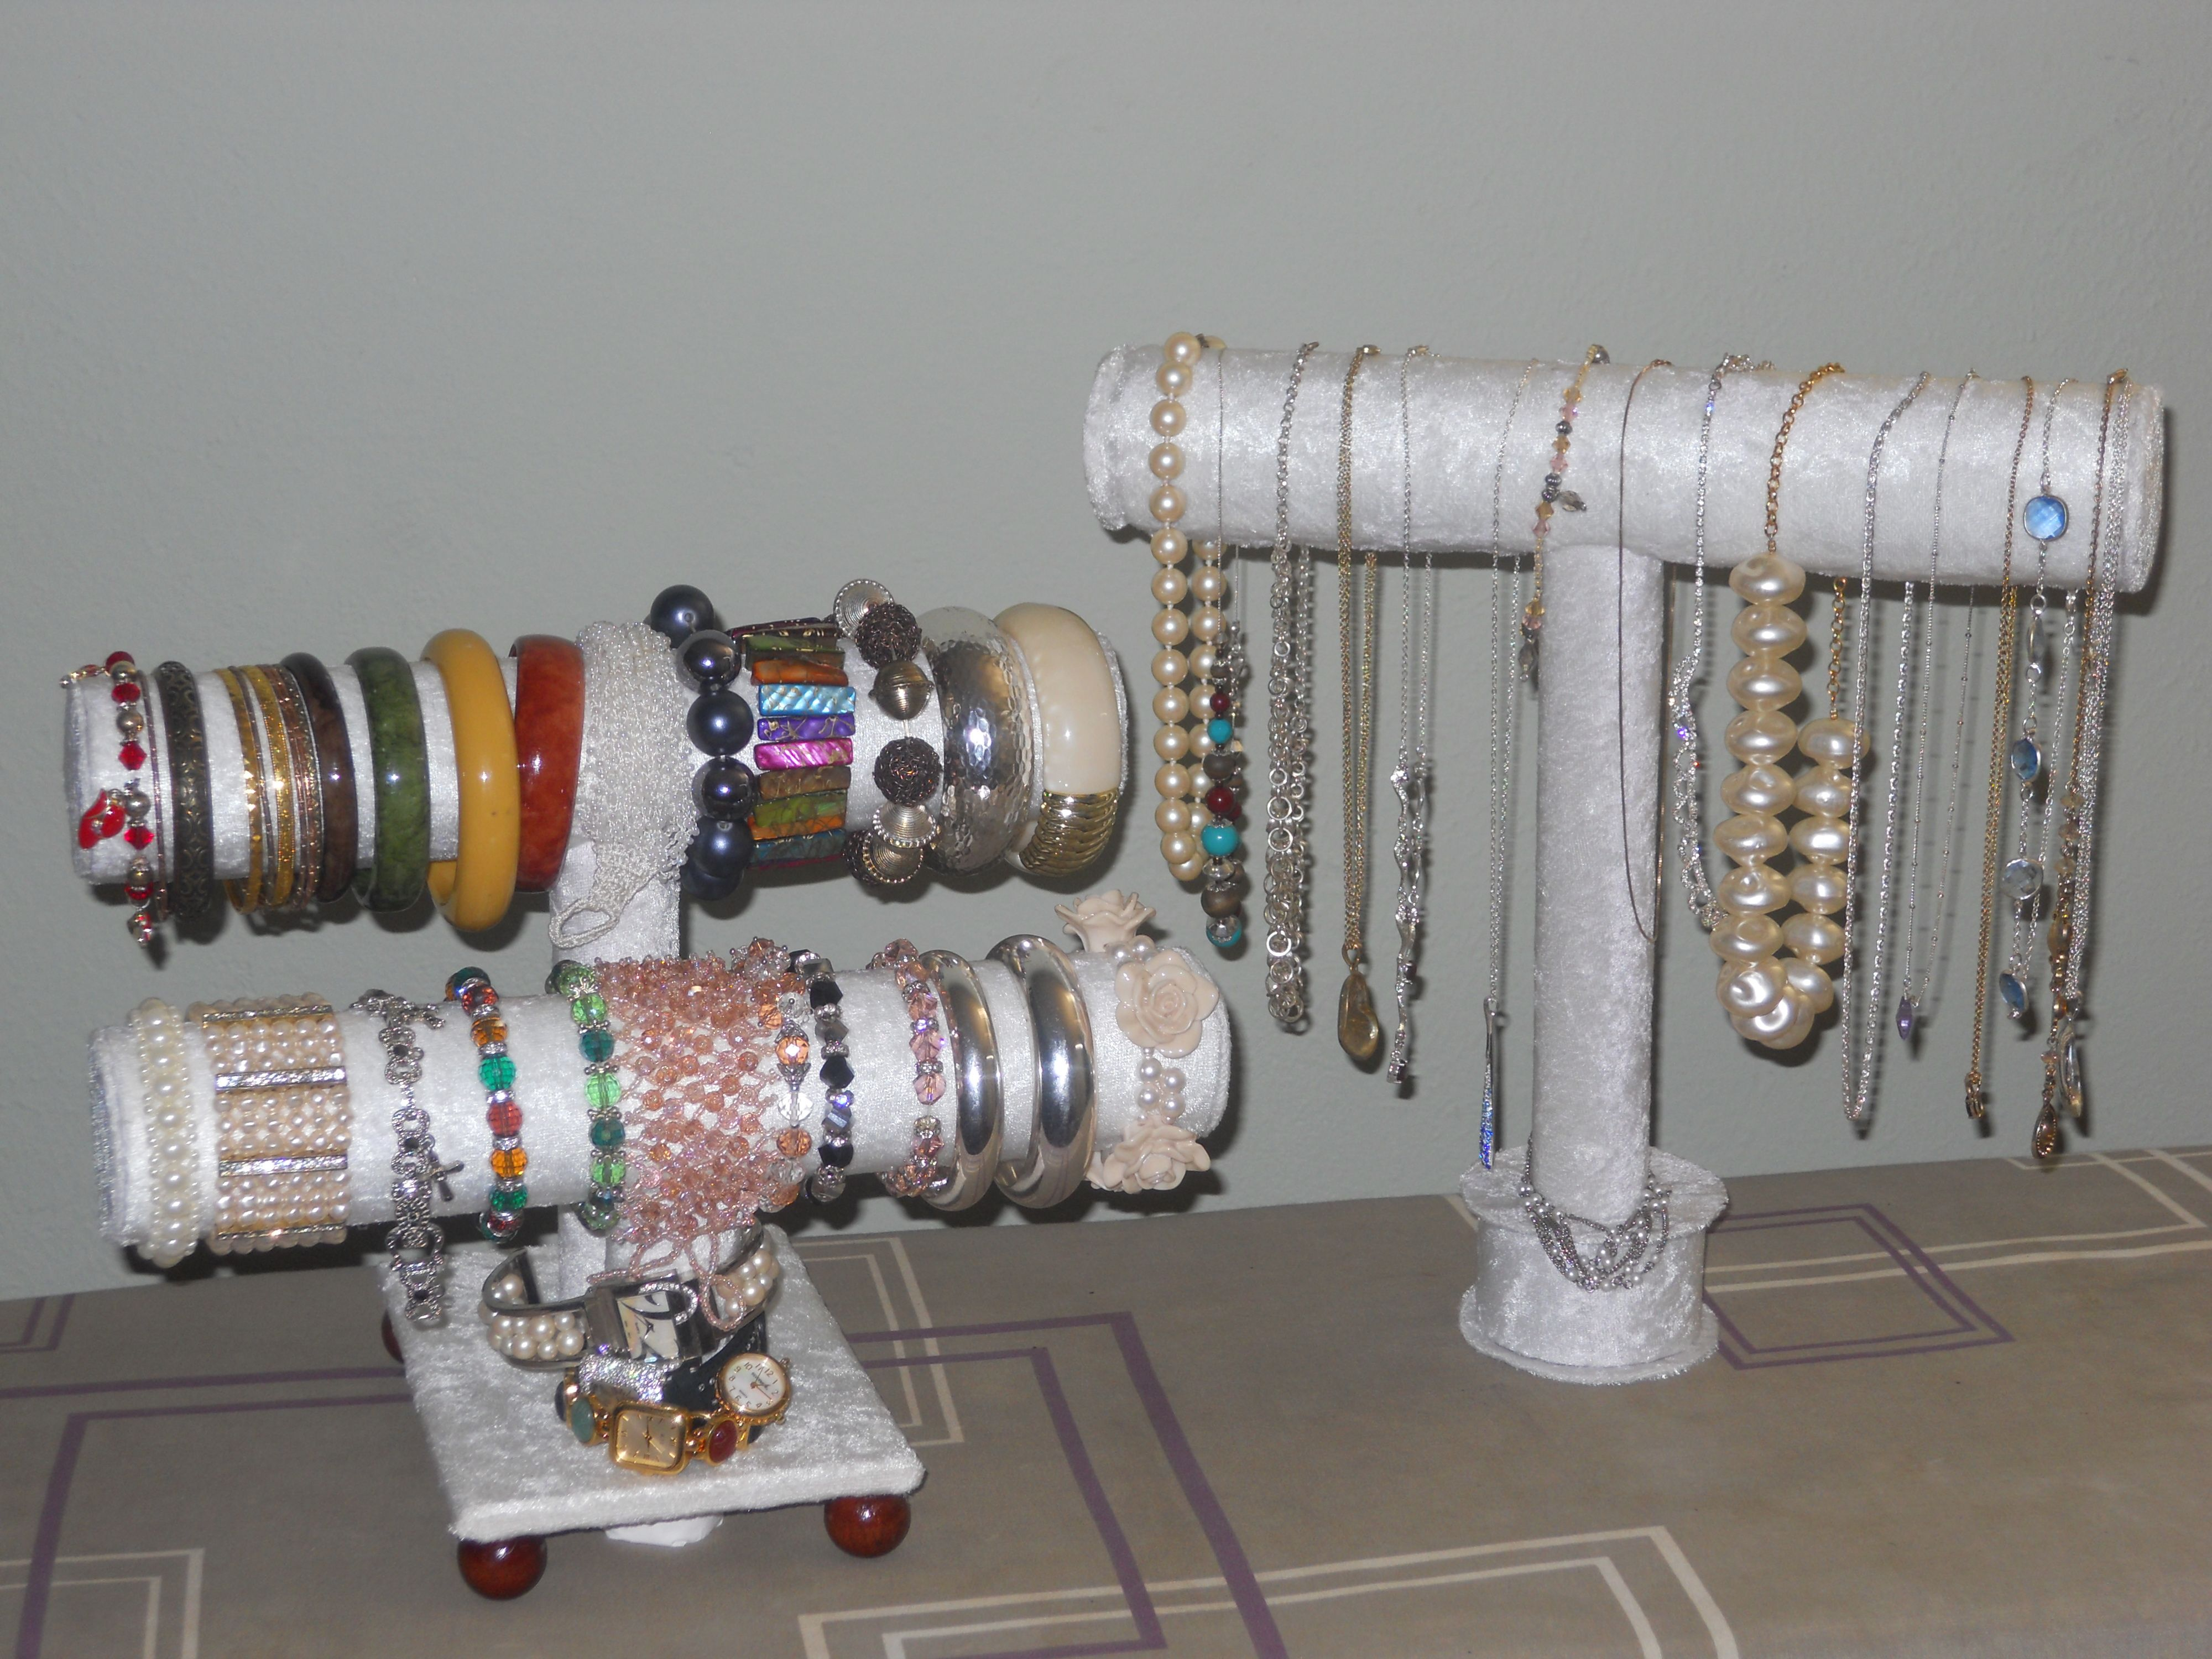 DIY jewelry holders made from paper towel and toilet paper rolls